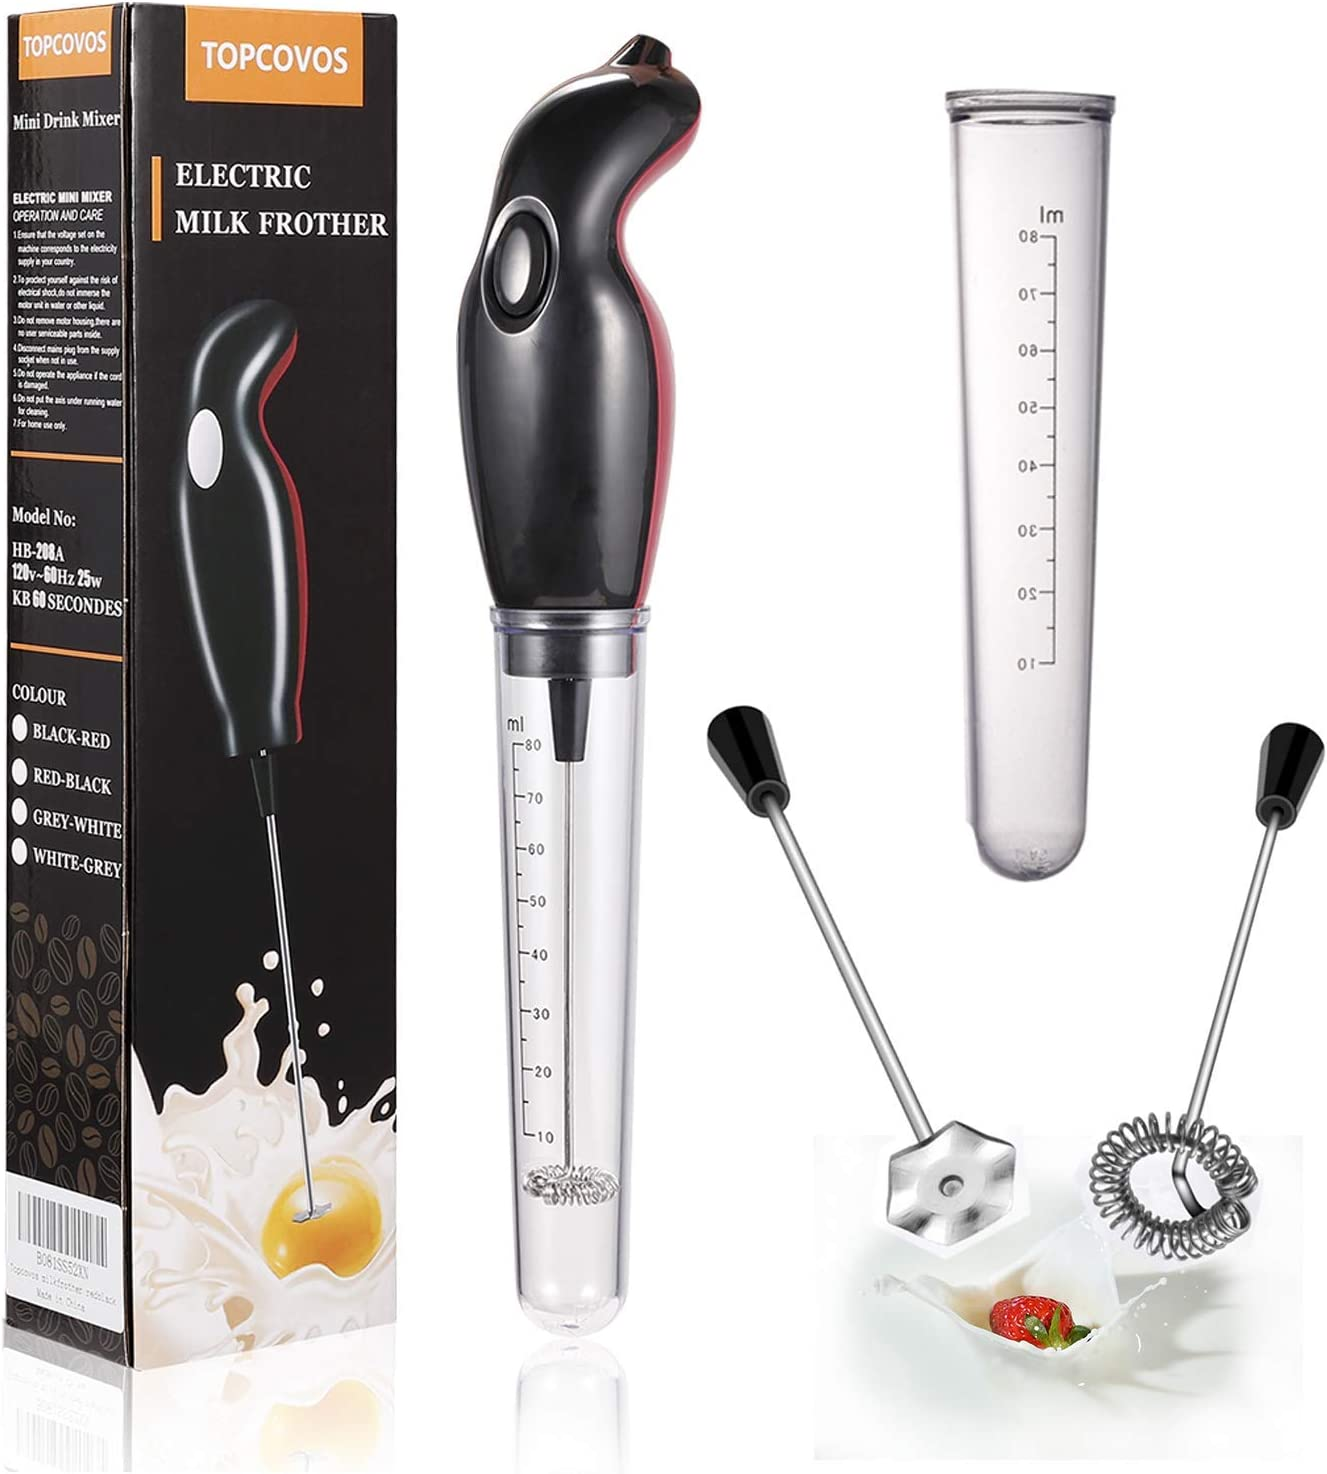 Milk Frother Handheld Electric Foam Maker with Dust Proof Turbo For Coffee, Latte, Cappuccino, Hot Chocolate, Durable Drink Mixer With 2 Stainless Steel Whisk, 1 Measuring Tube(Clever Cover)